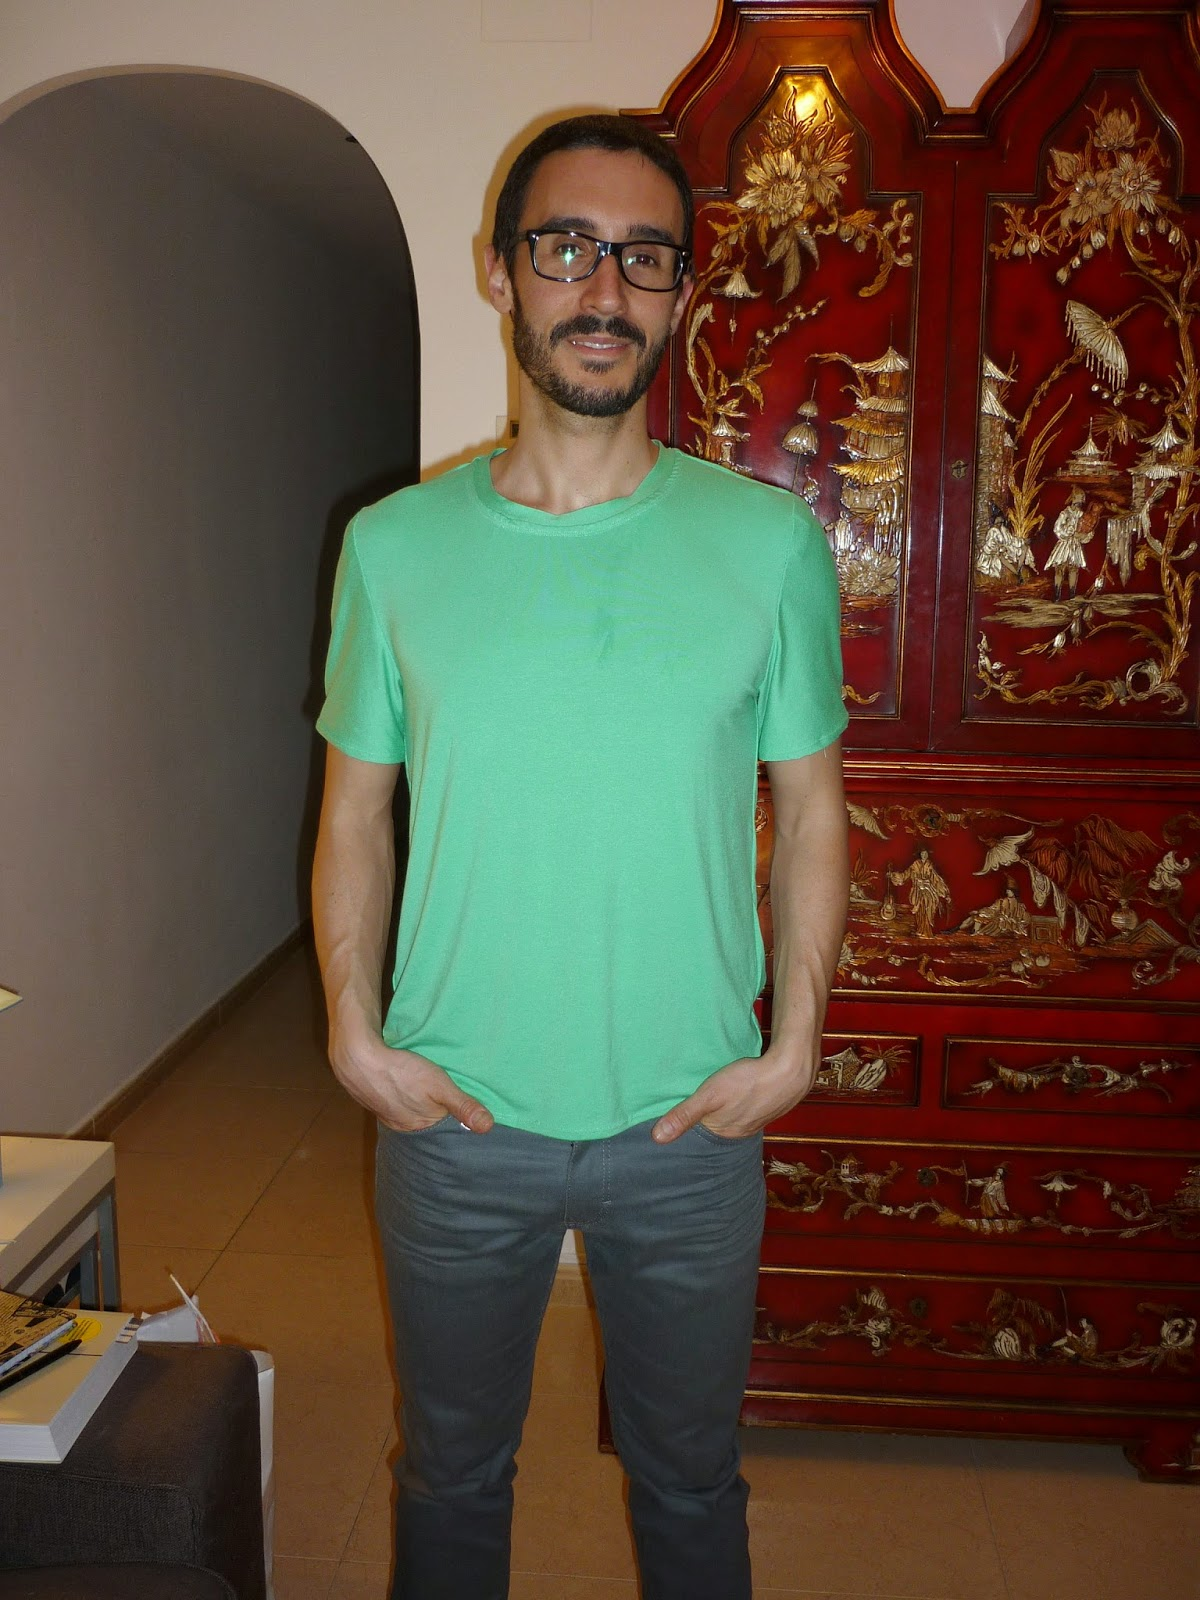 modistilla de pacotilla just for men telaria strathcona henley tshirt camiseta thread and theory